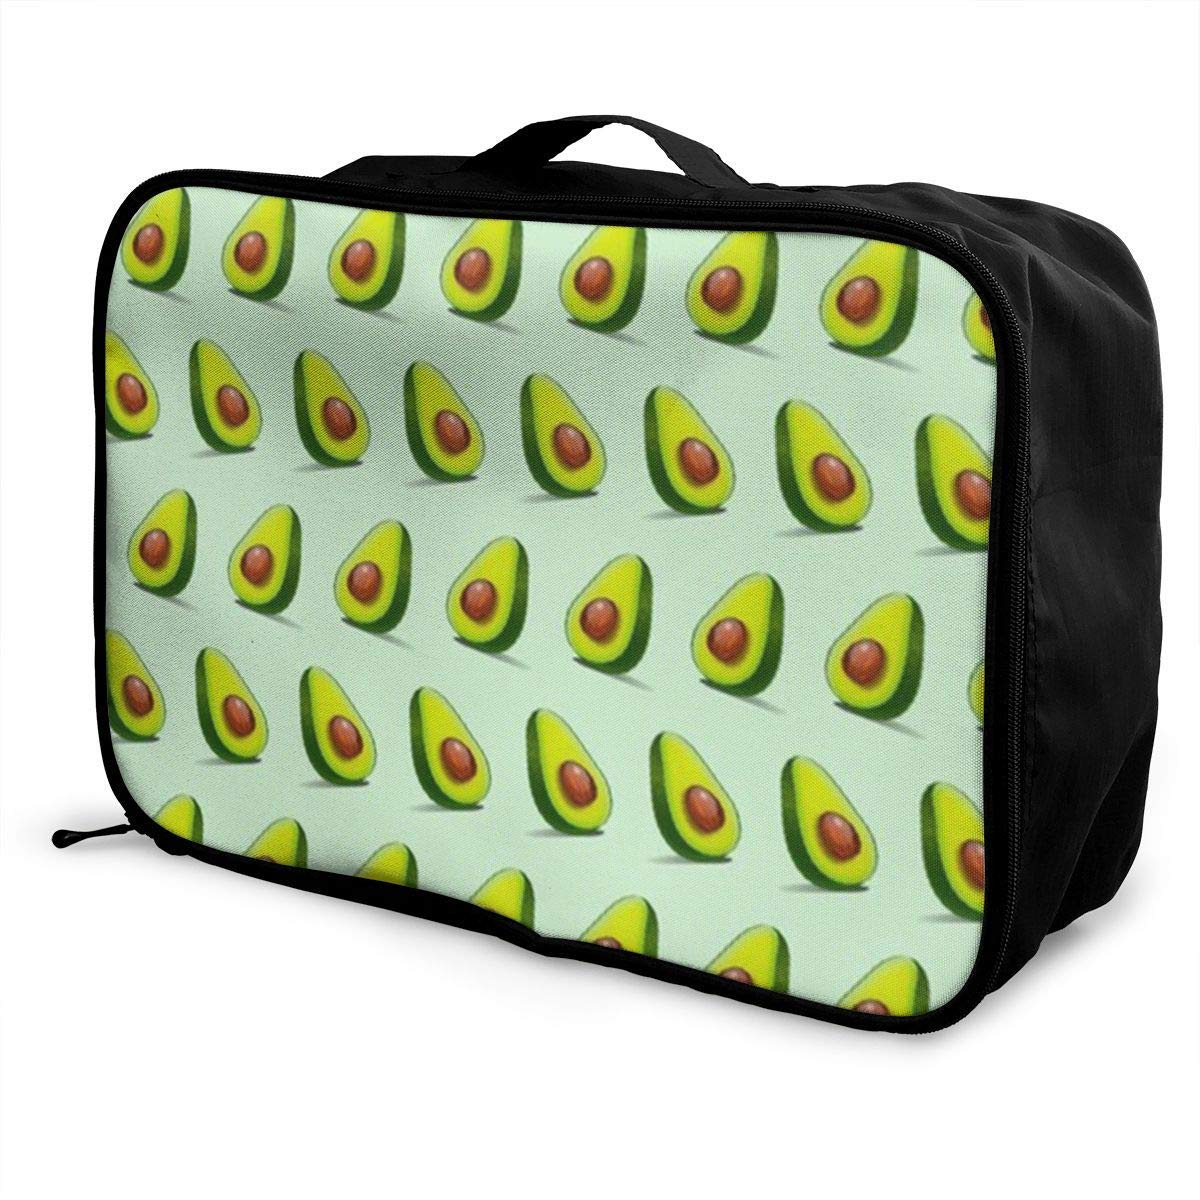 Portable Luggage Duffel Bag Avocado Pattern Travel Bags Carry-on In Trolley Handle